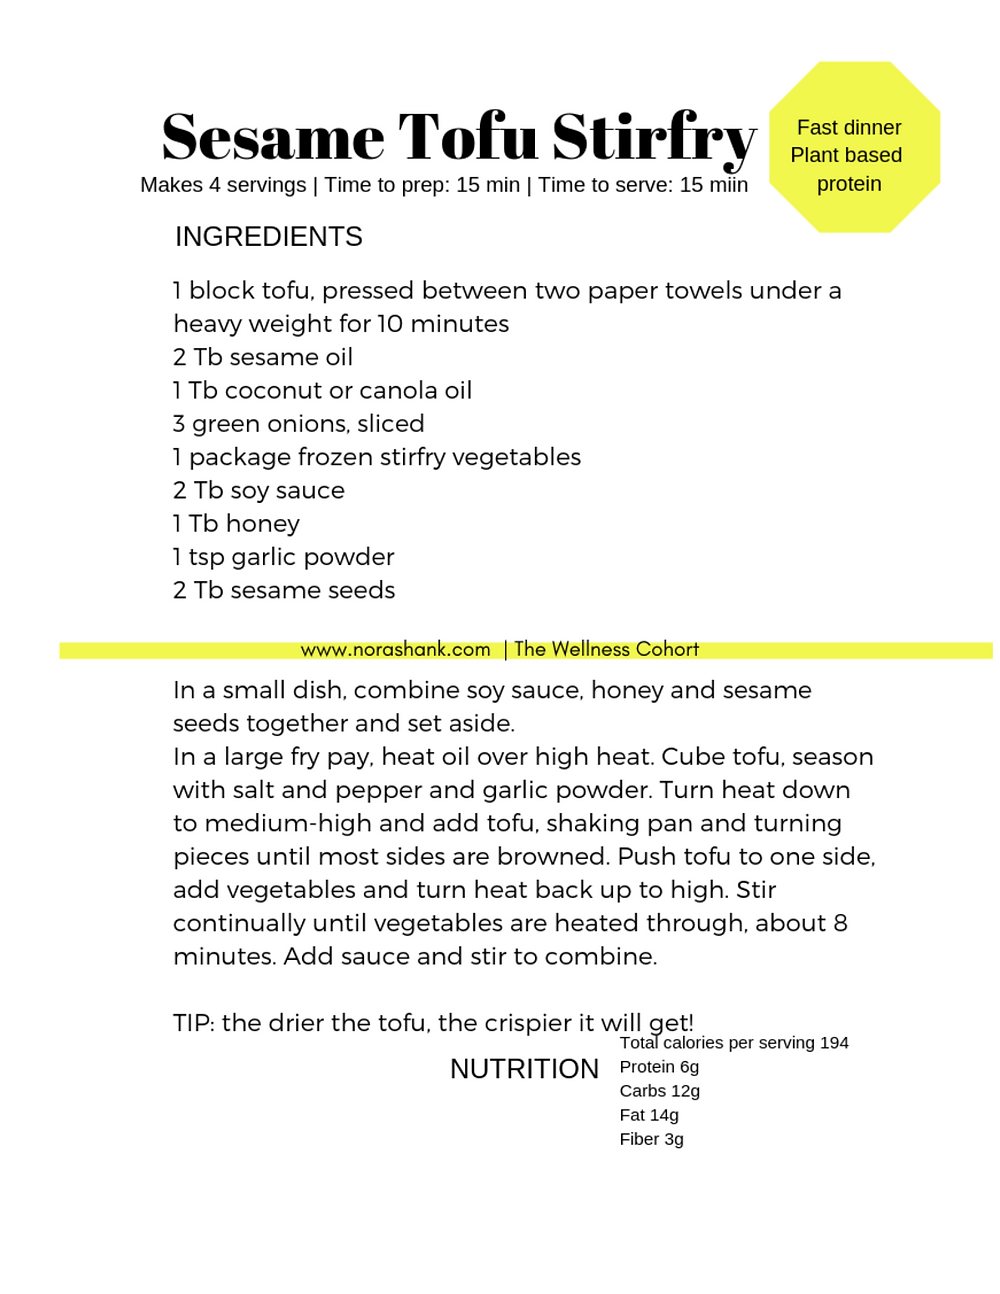 How to get started eating a plant-based diet with this simple stirfry recipe from Nora Shank Nutrition